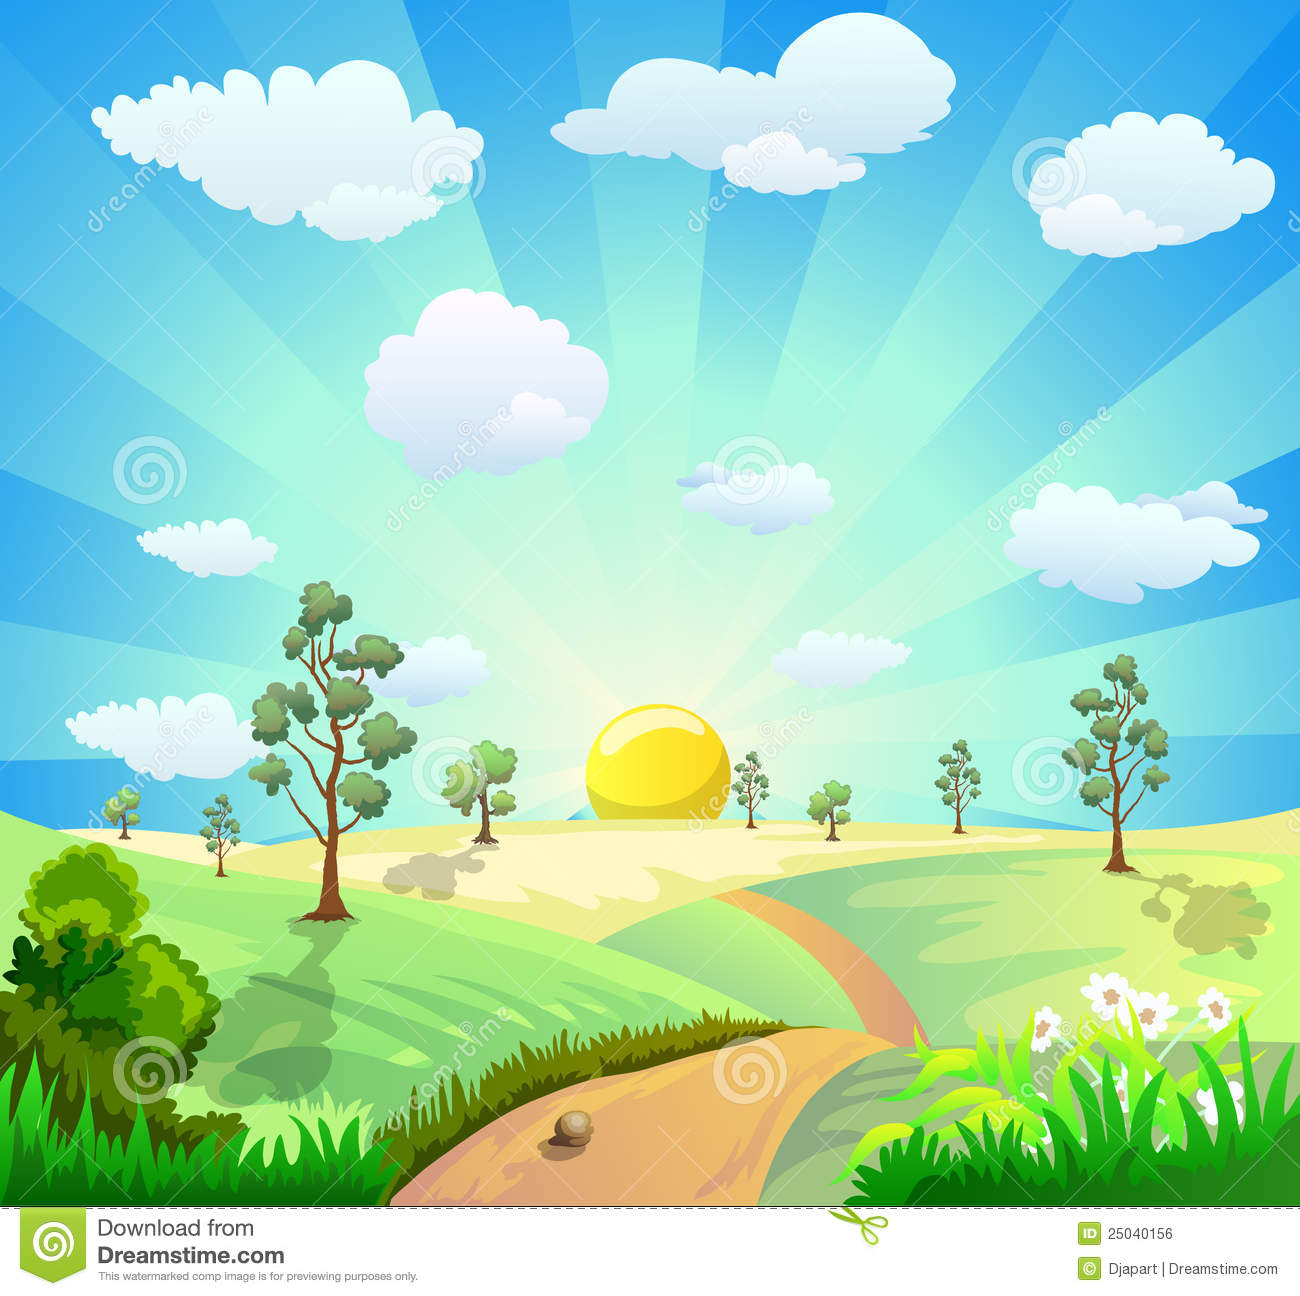 Country clipart garden background Image Landscape  Cartoon Free